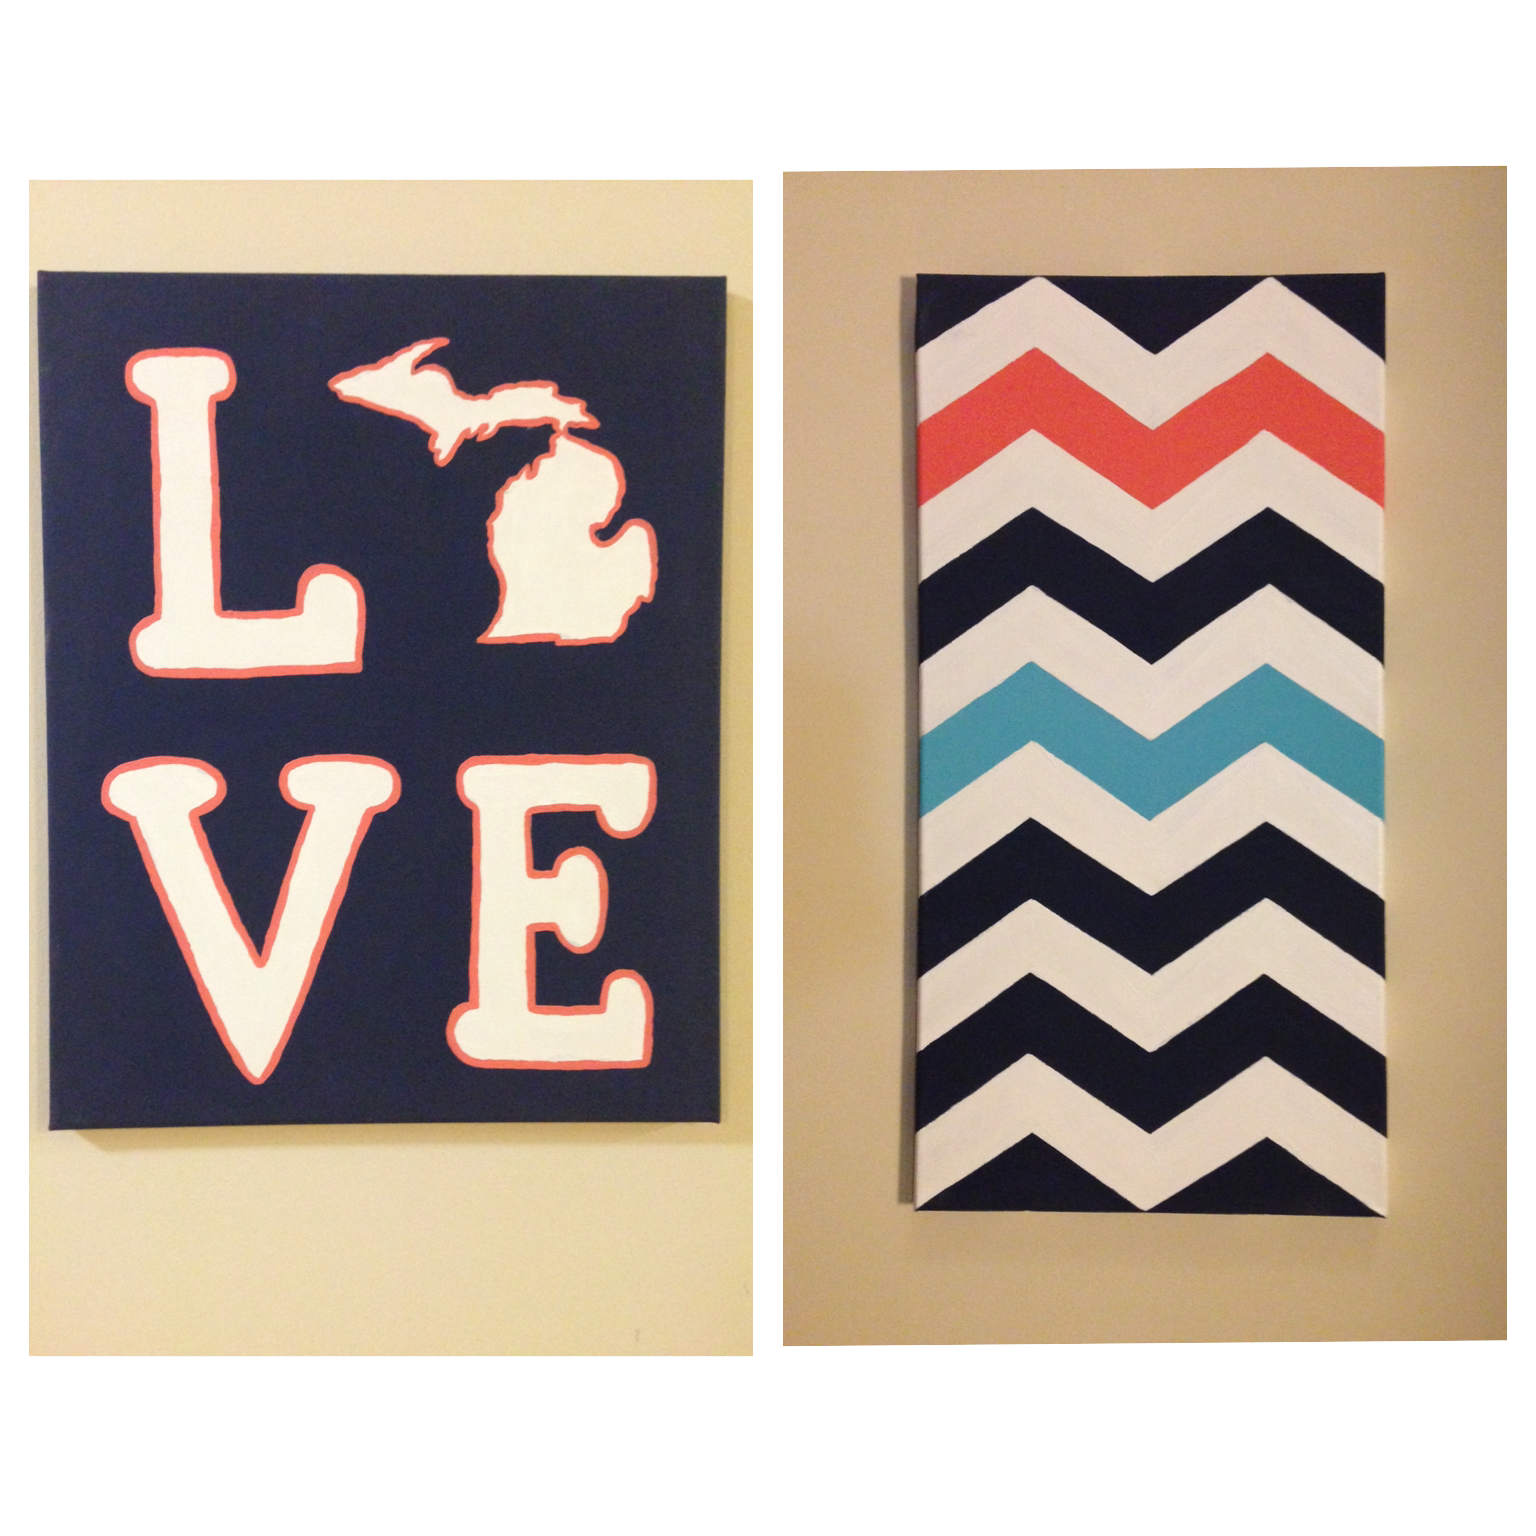 Diy do it yourself navy and coral painted canvas love michigan diy do it yourself navy and coral painted canvas love michigan canvas painting ideas chevron painting matching canvas painting apartment decor solutioingenieria Image collections